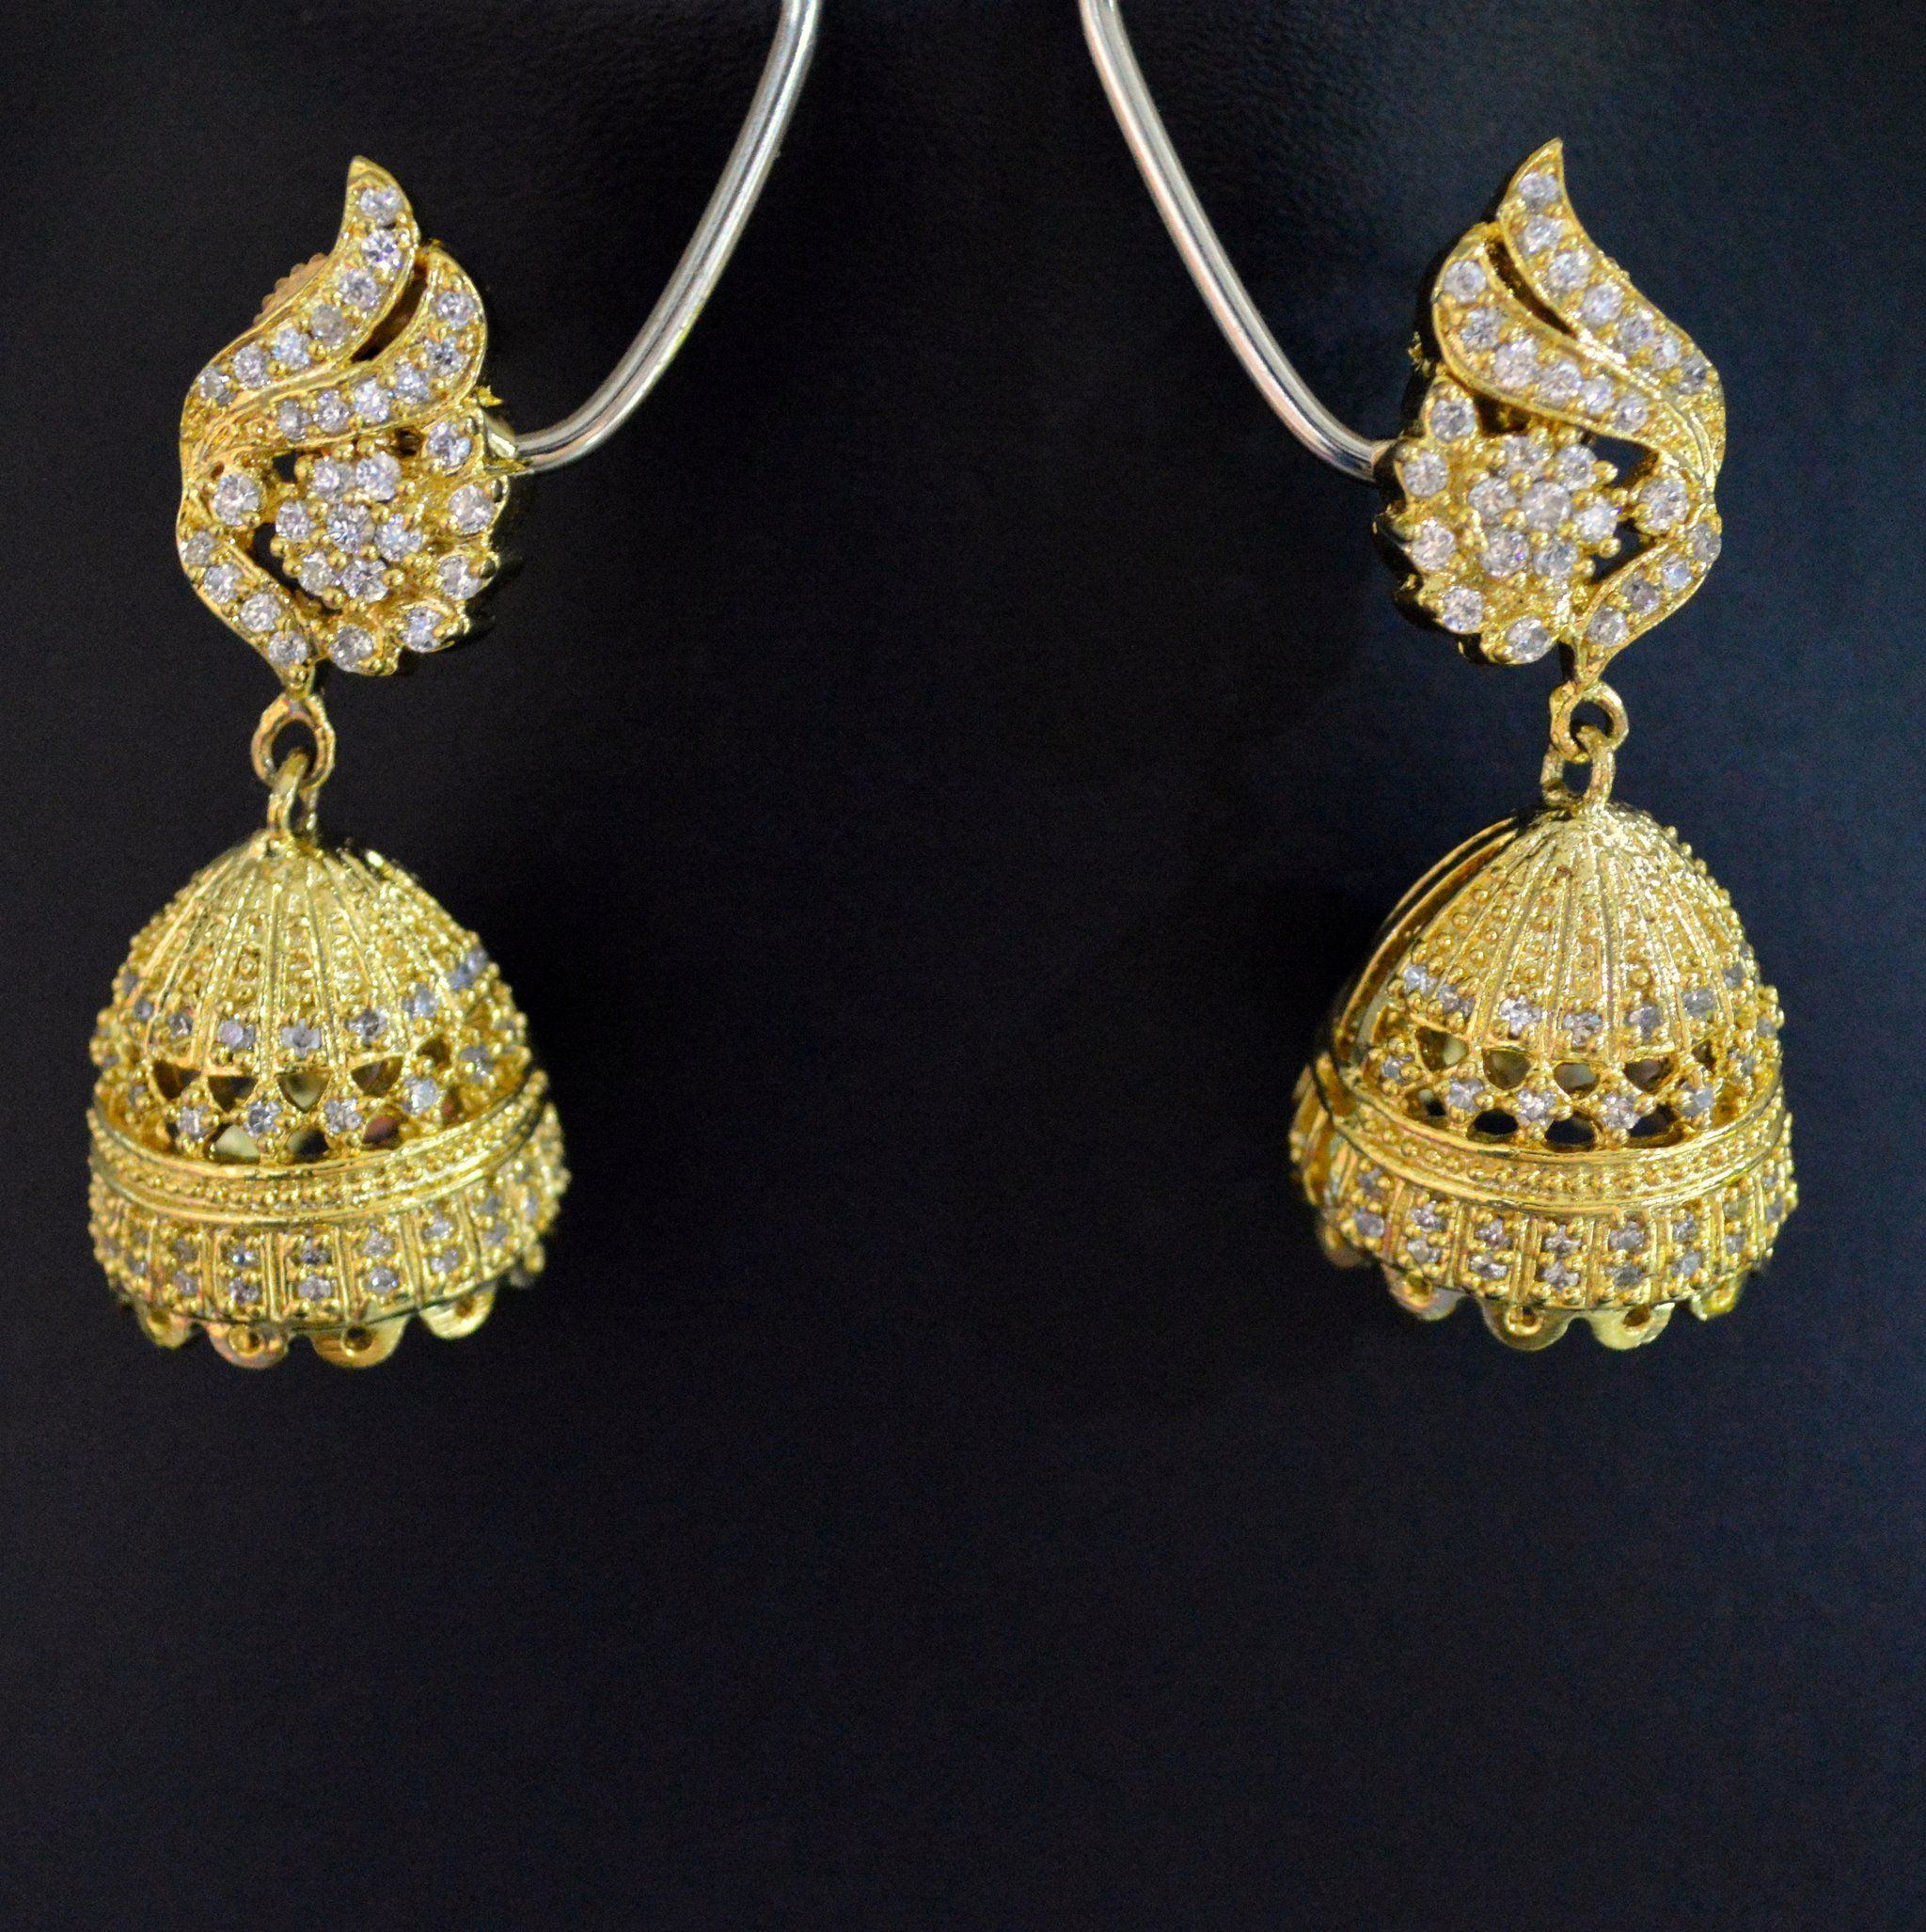 american beautiful designs style round designers jaipur jewelry buy original indian mart bali diamond online earrings